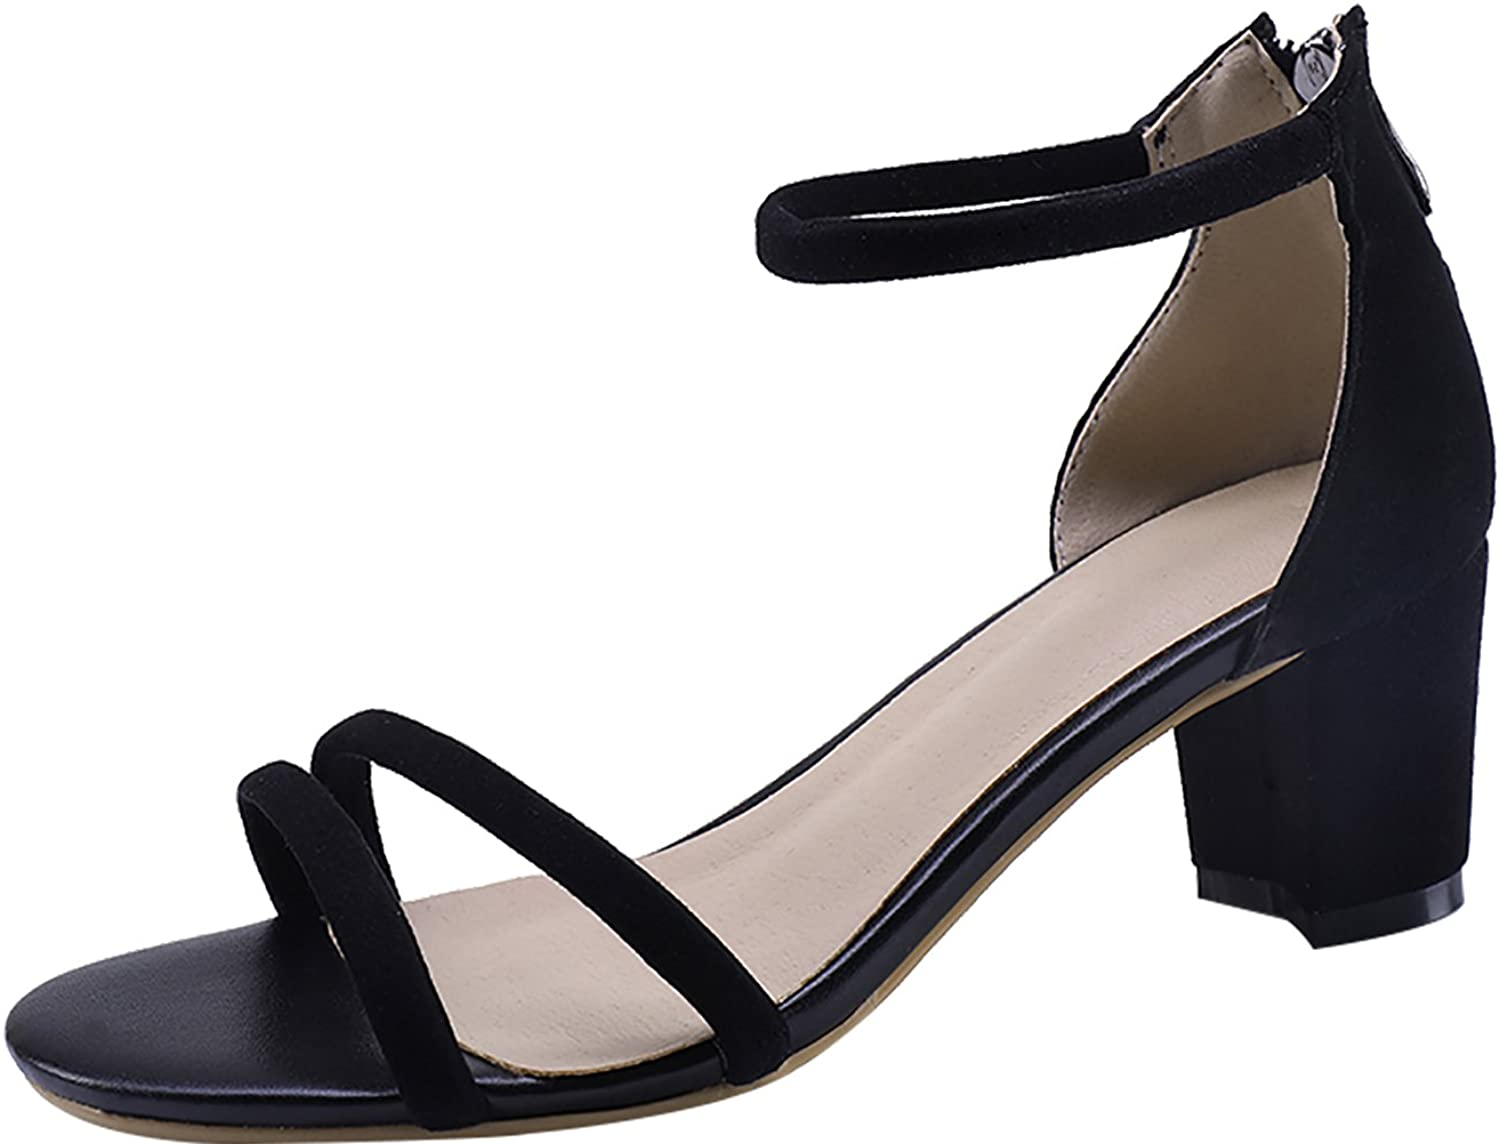 Calaier Womens Salac Open-Toe 6CM Block Heel Zipper Sandals shoes